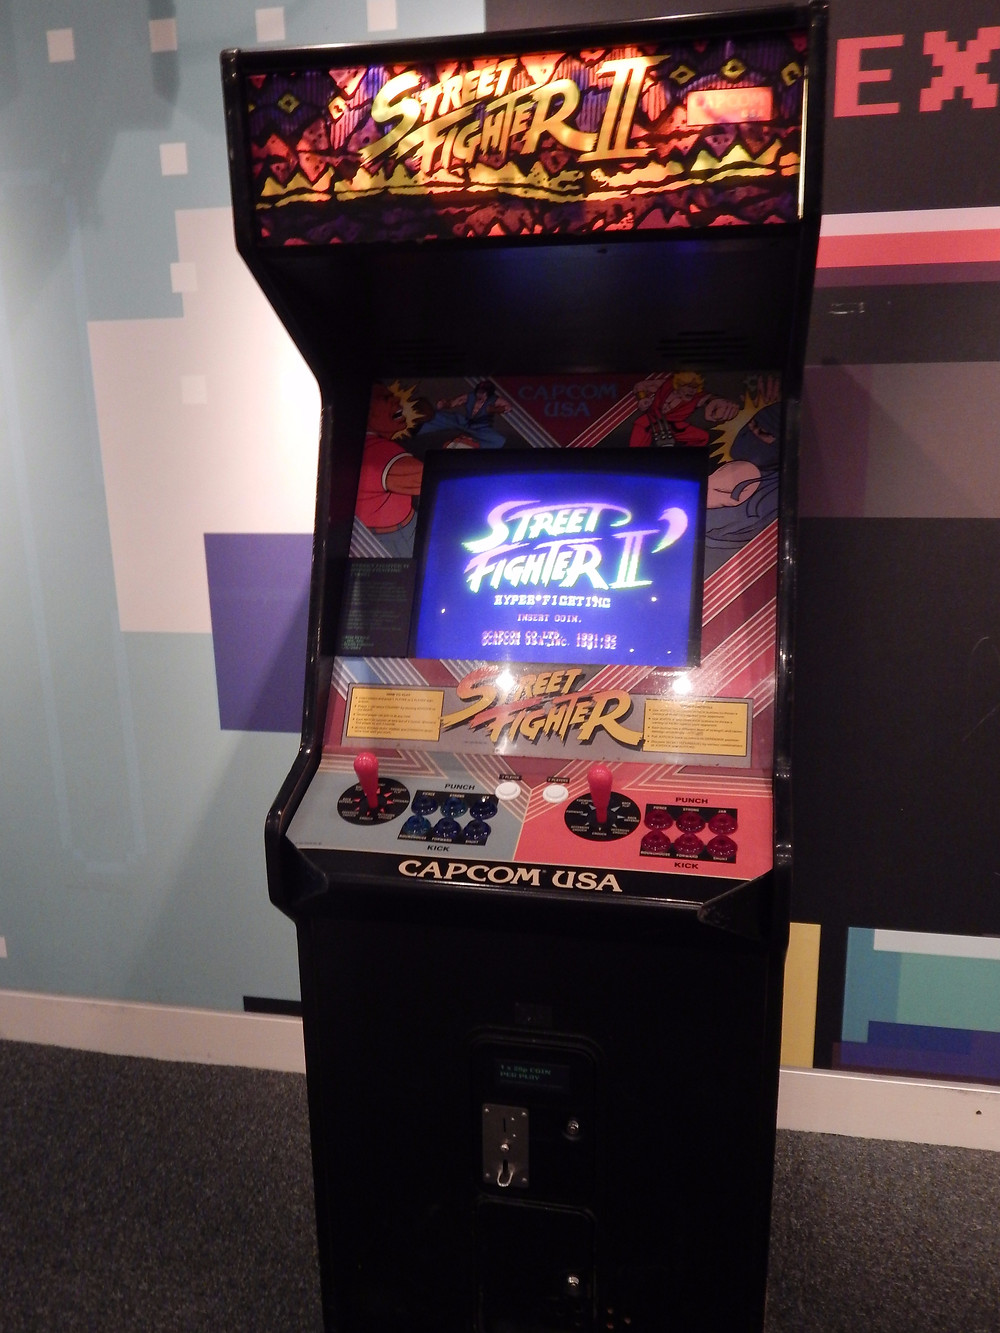 Street Fighter 2 coin op arcade cabinet